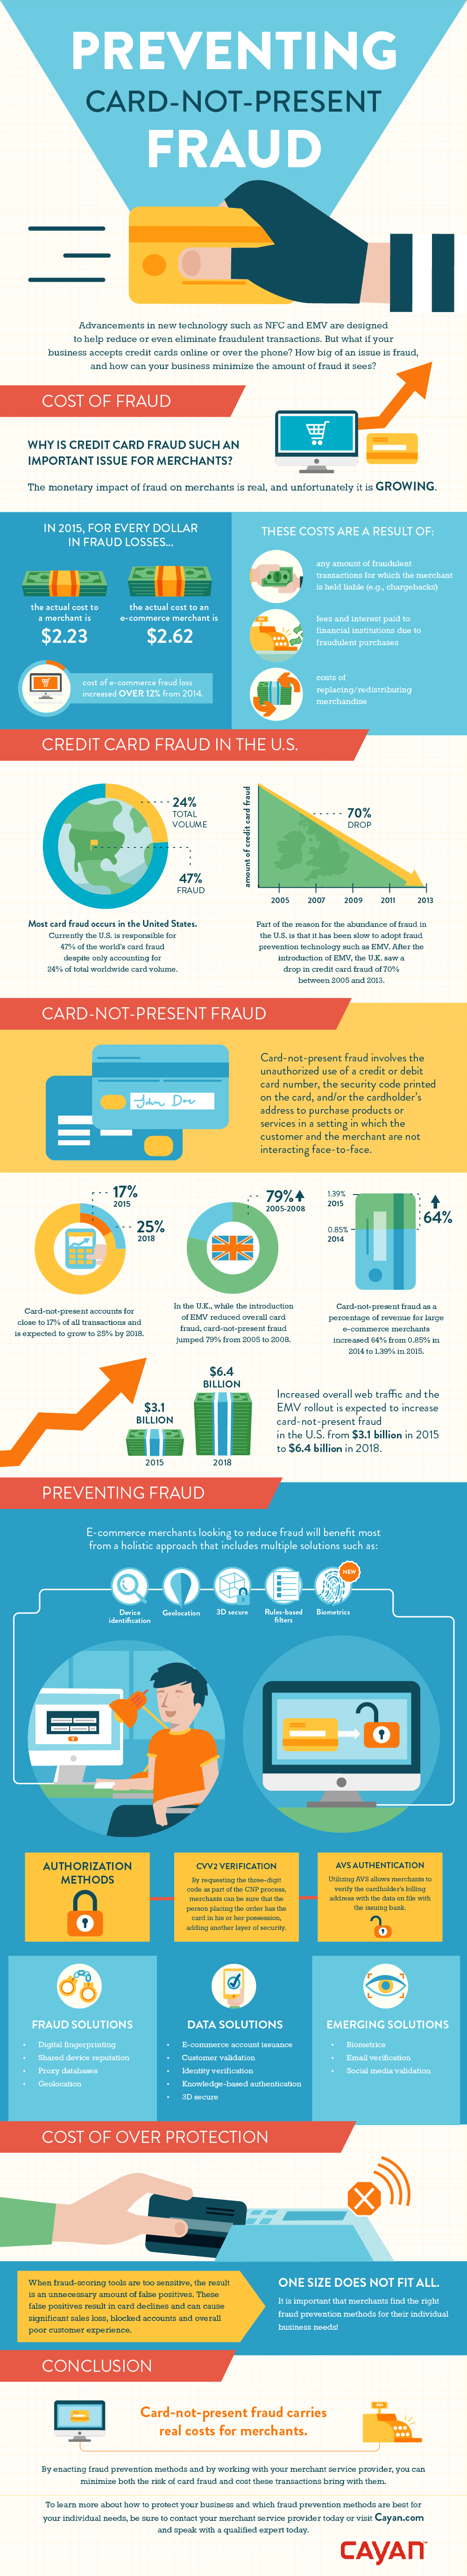 Preventing Card-Not-Present Fraud